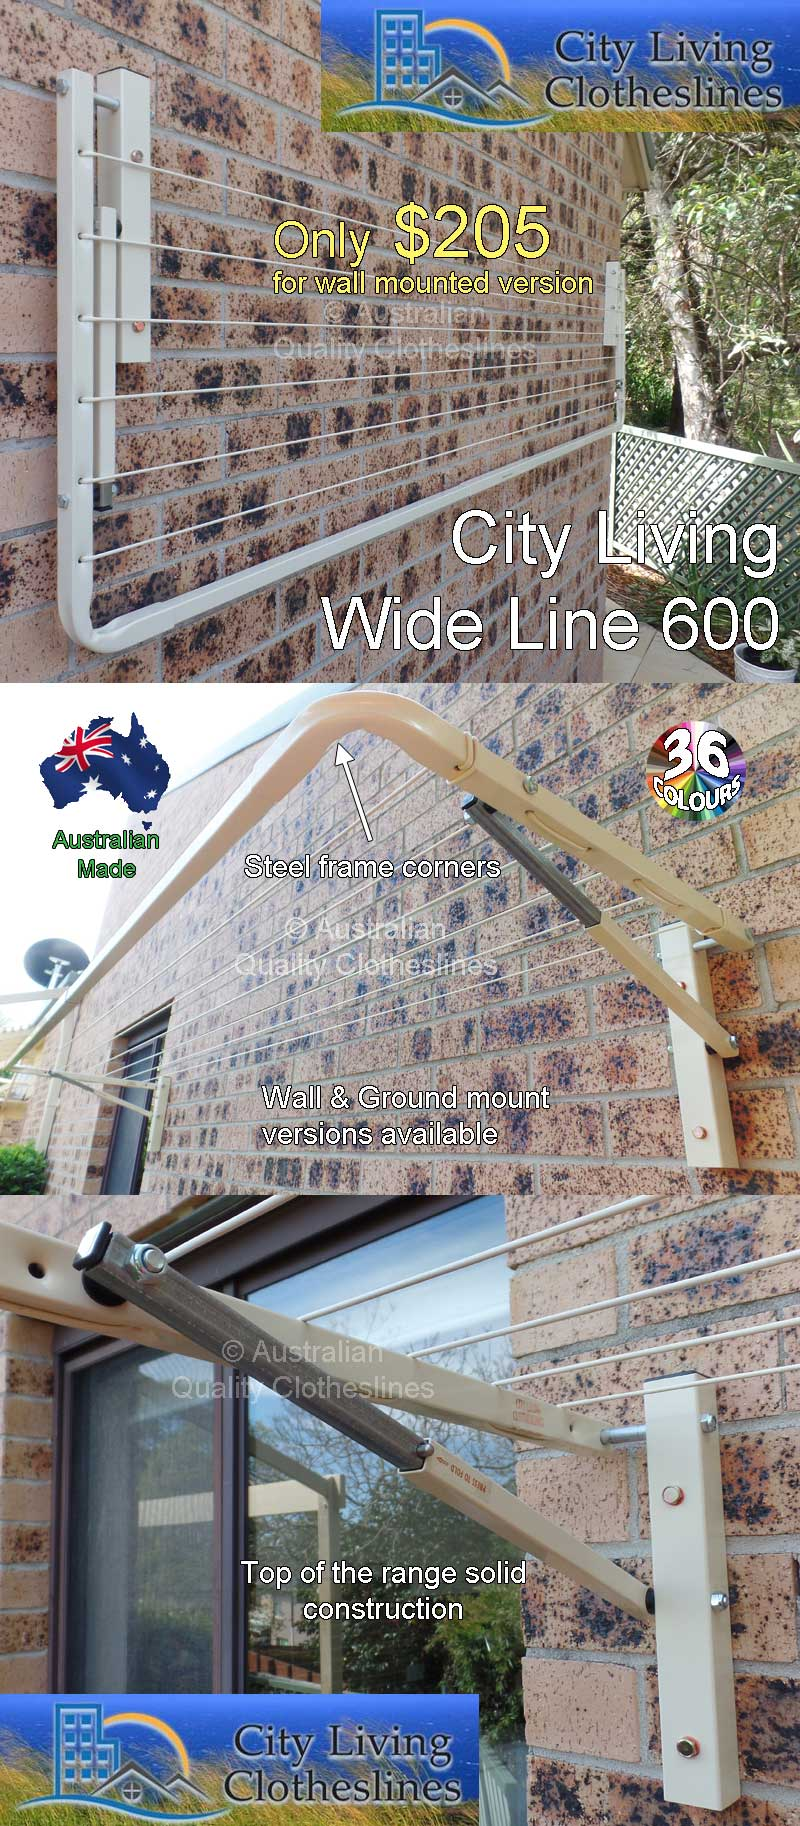 City living Wide Line 600 fold down clothesline